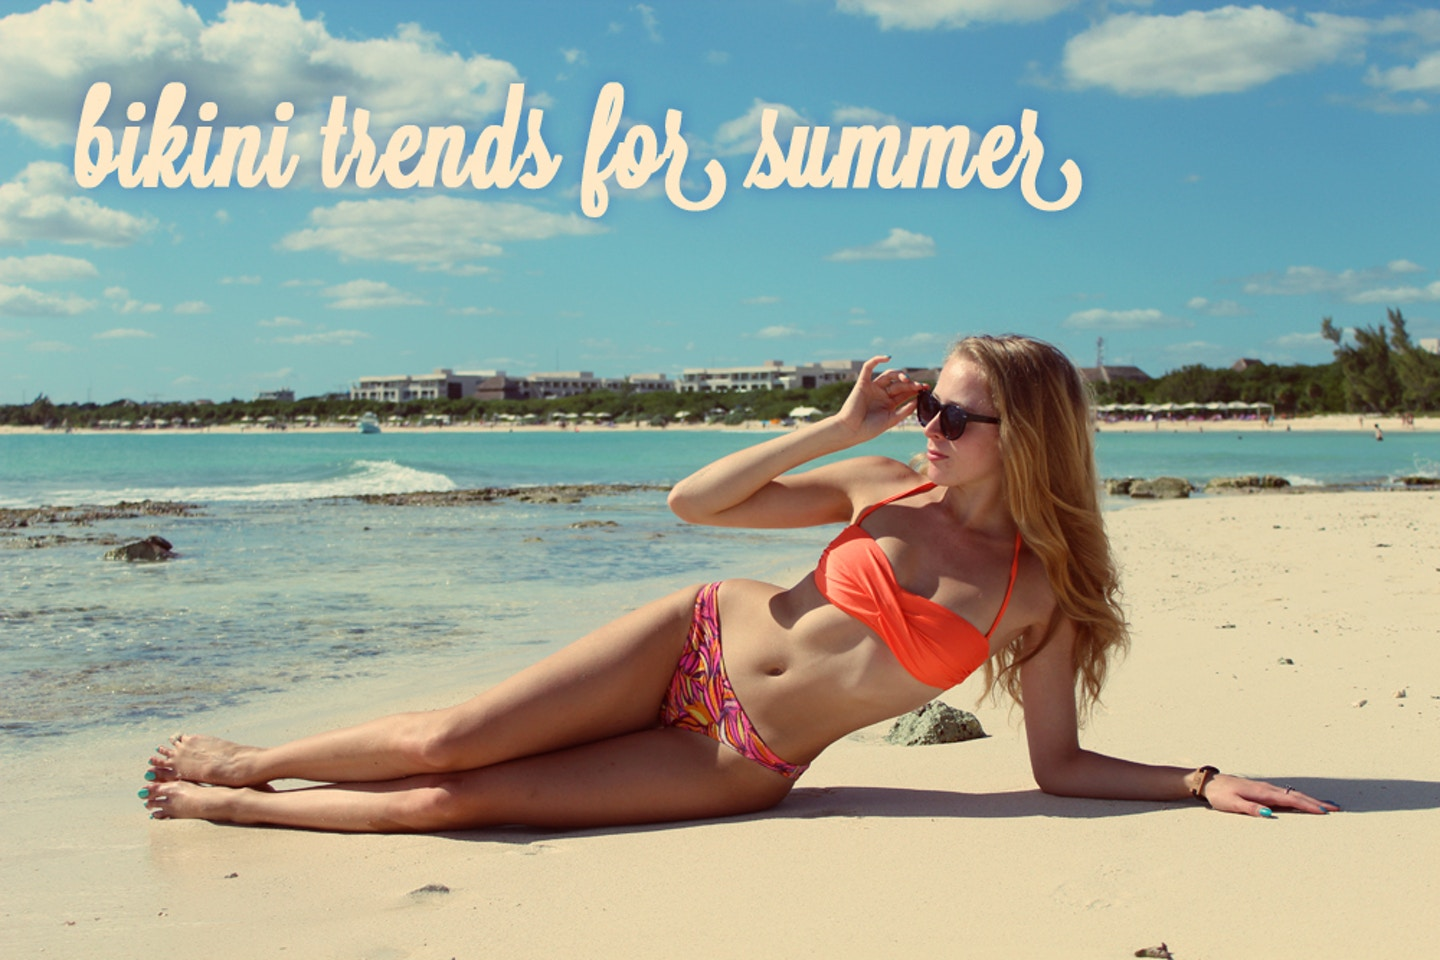 Bikini trends for summer 2013!